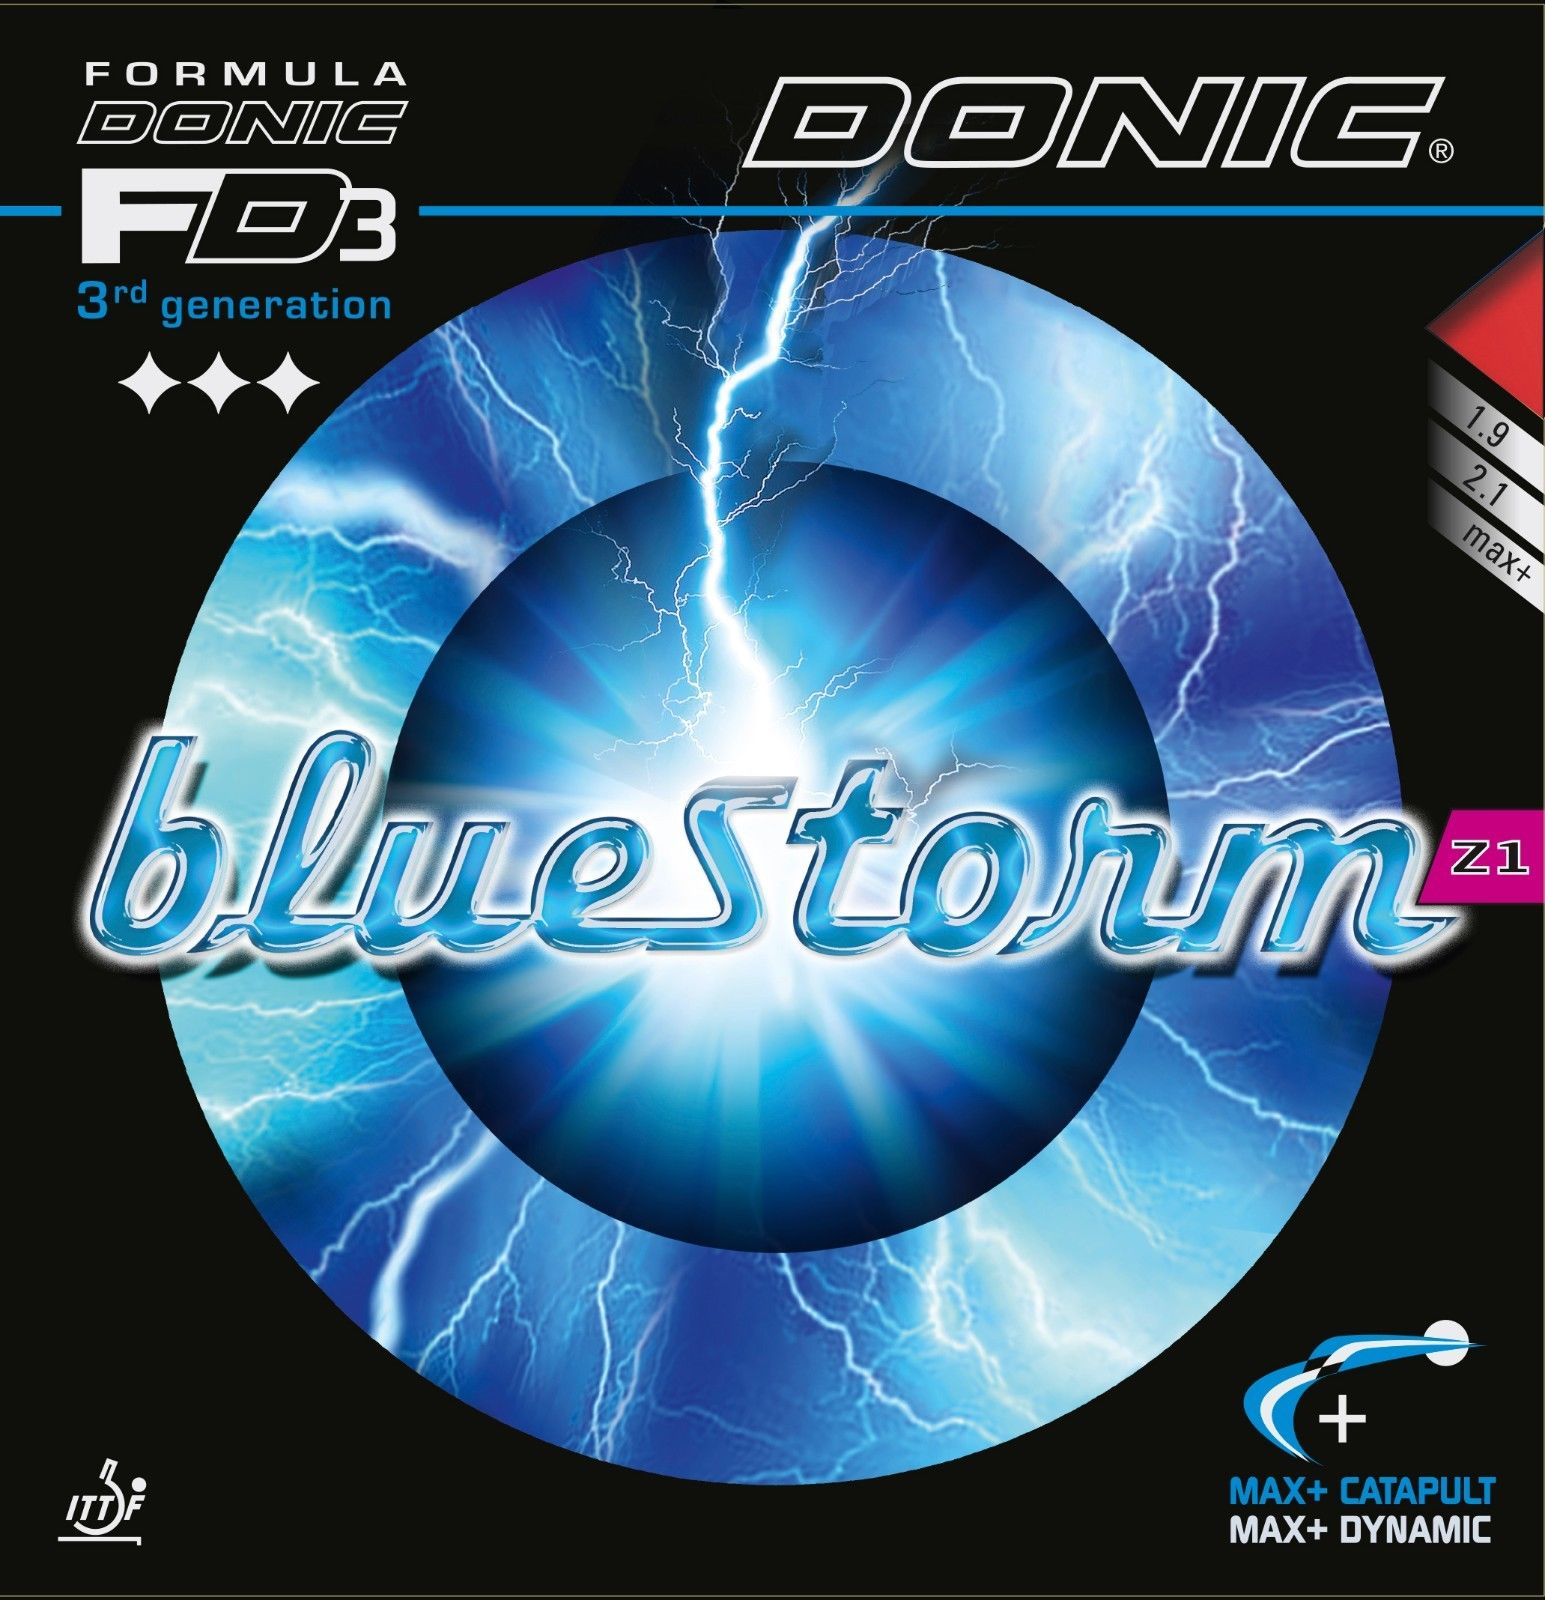 Donic Rubber Bluestorm Turbo Z1